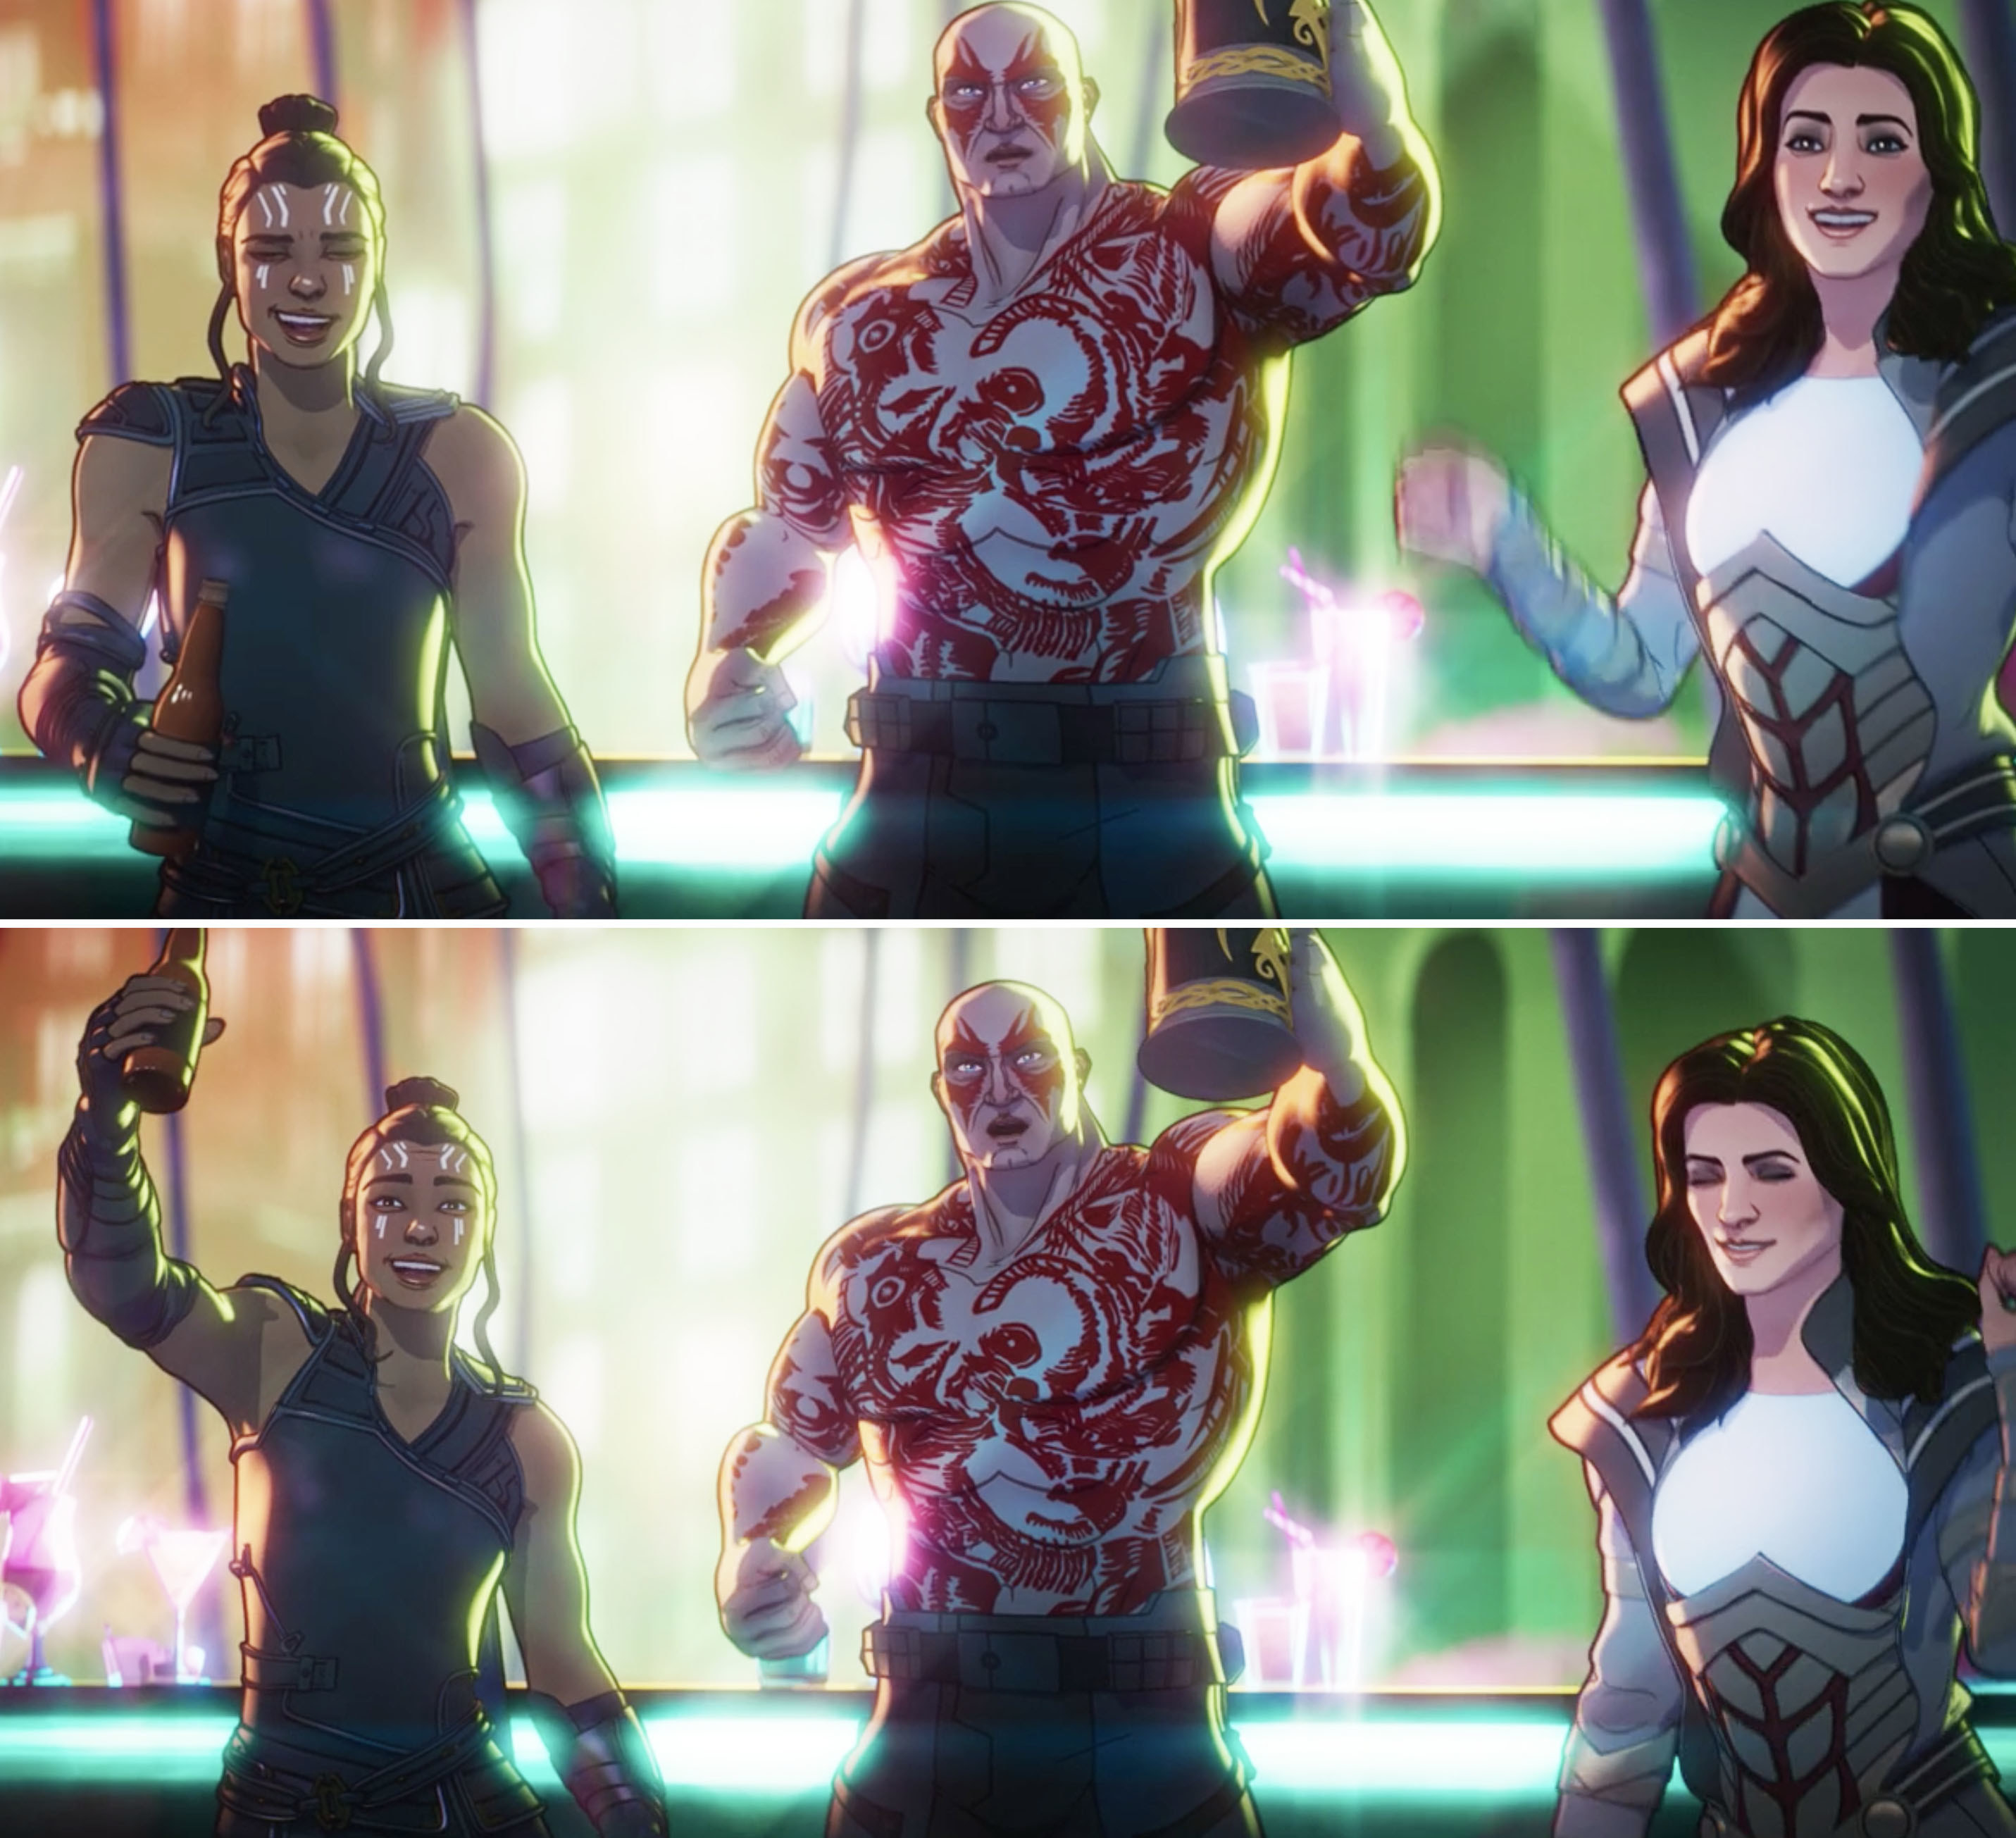 Animated Valkyrie, Drax, and Sif